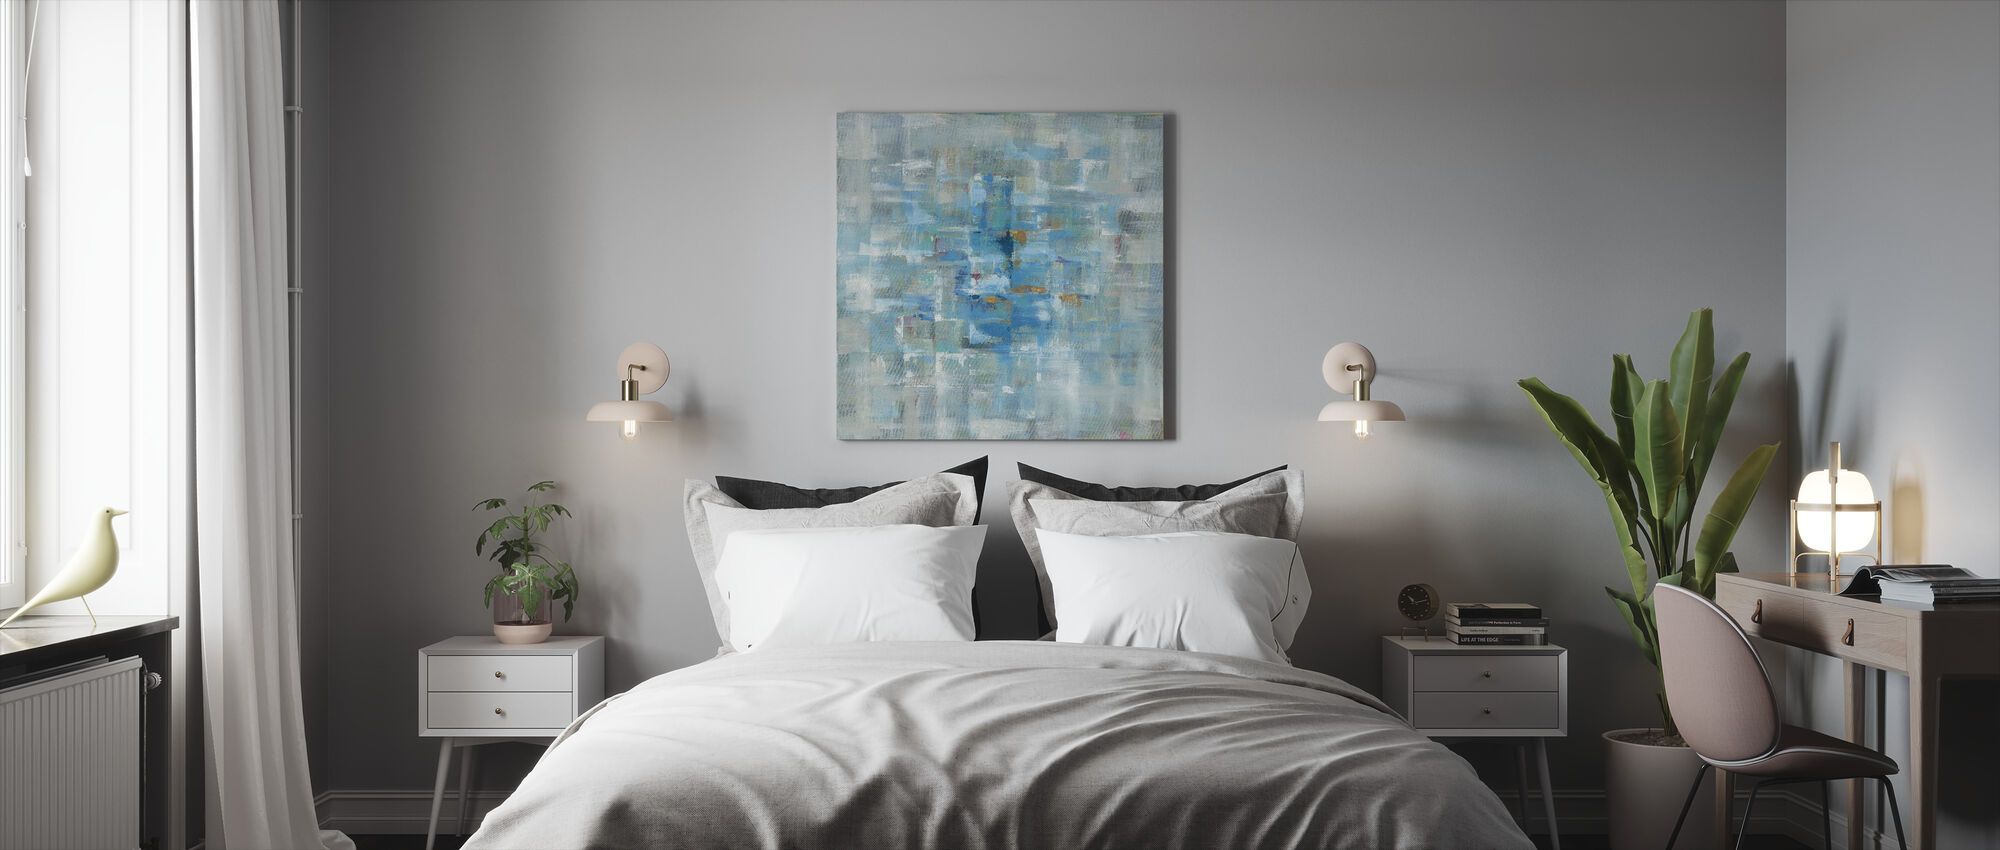 Abstract Squares - Canvas print - Bedroom